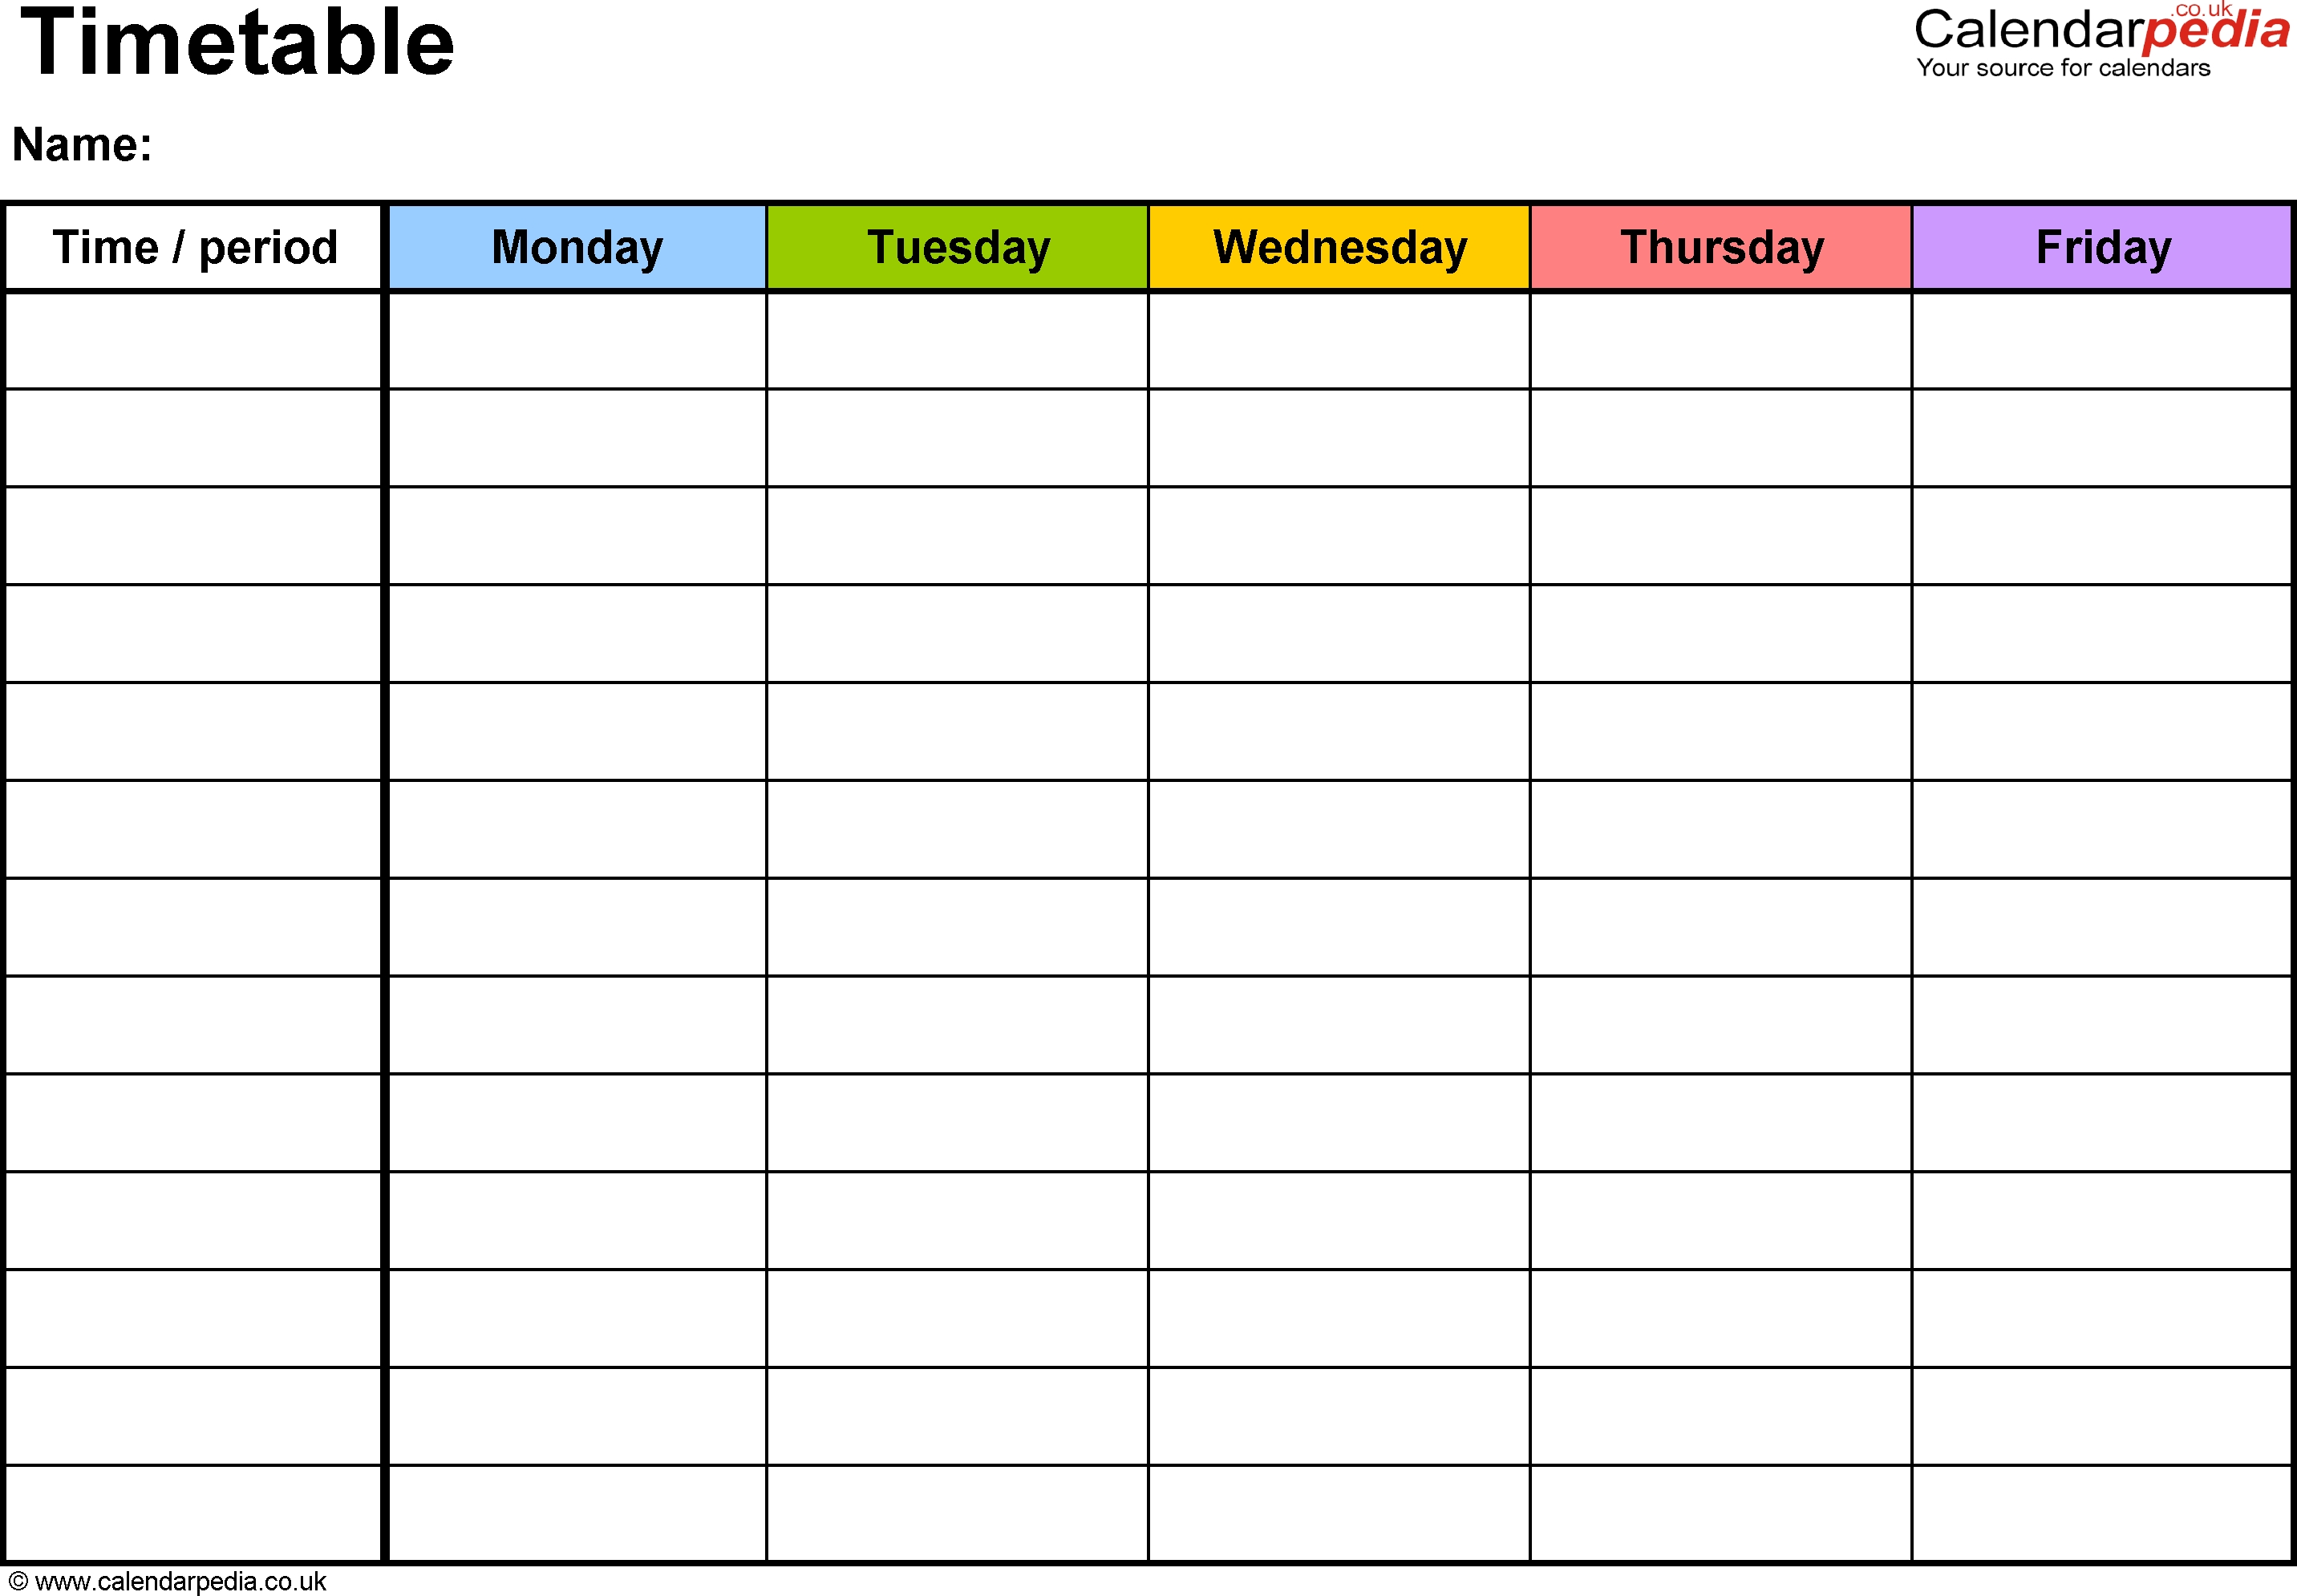 Pdf Timetable Template 2: Landscape Format, A4, 1 Page, Monday To with Free Printable 5 Day Calendar Pages